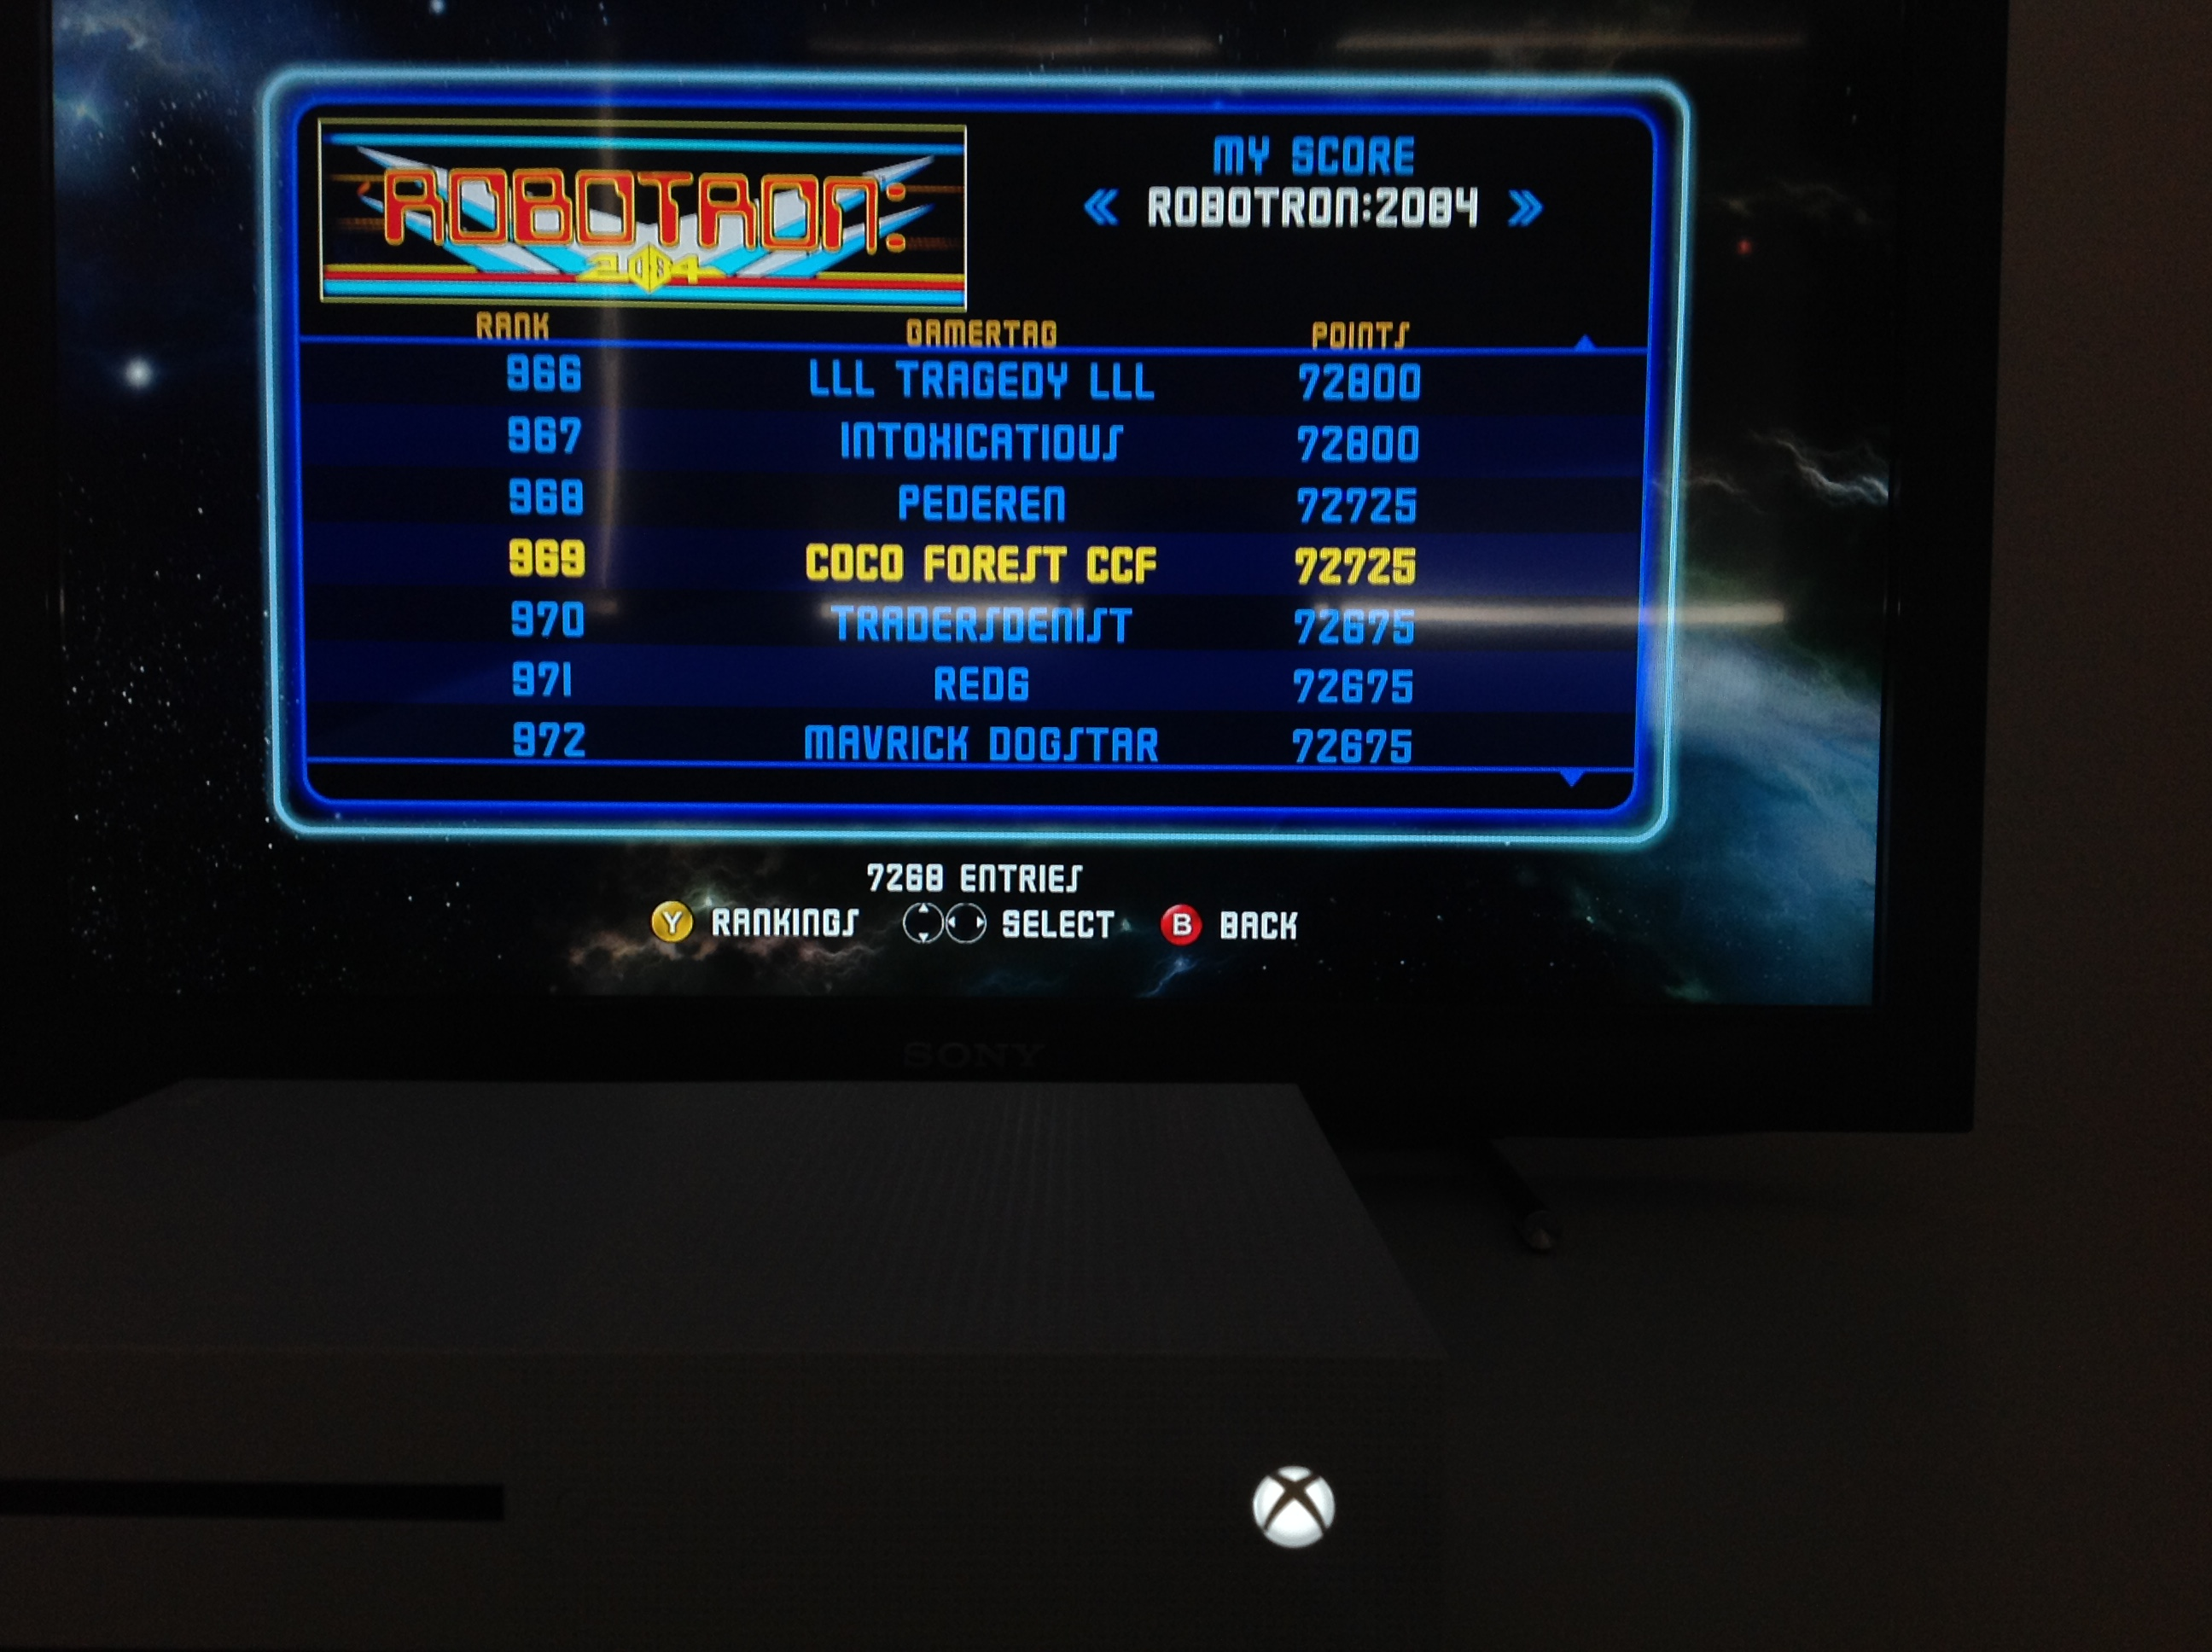 CoCoForest: Midway Arcade Origins: Robotron 2084 (Xbox 360) 72,725 points on 2019-05-26 06:25:31